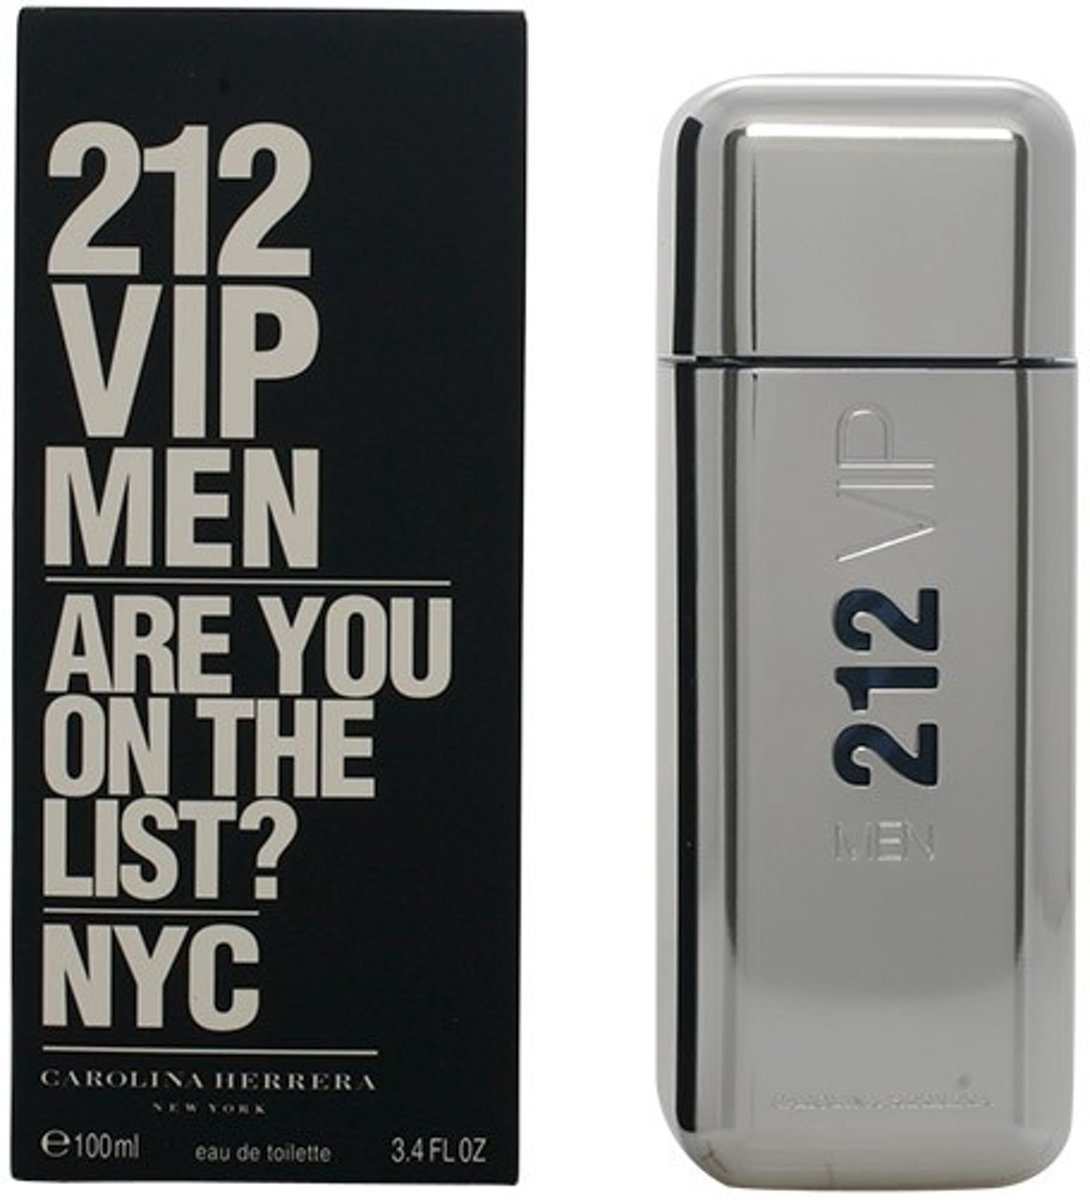 MULTI BUNDEL 2 stuks 212 VIP MEN Eau de Toilette Spray 100 ml